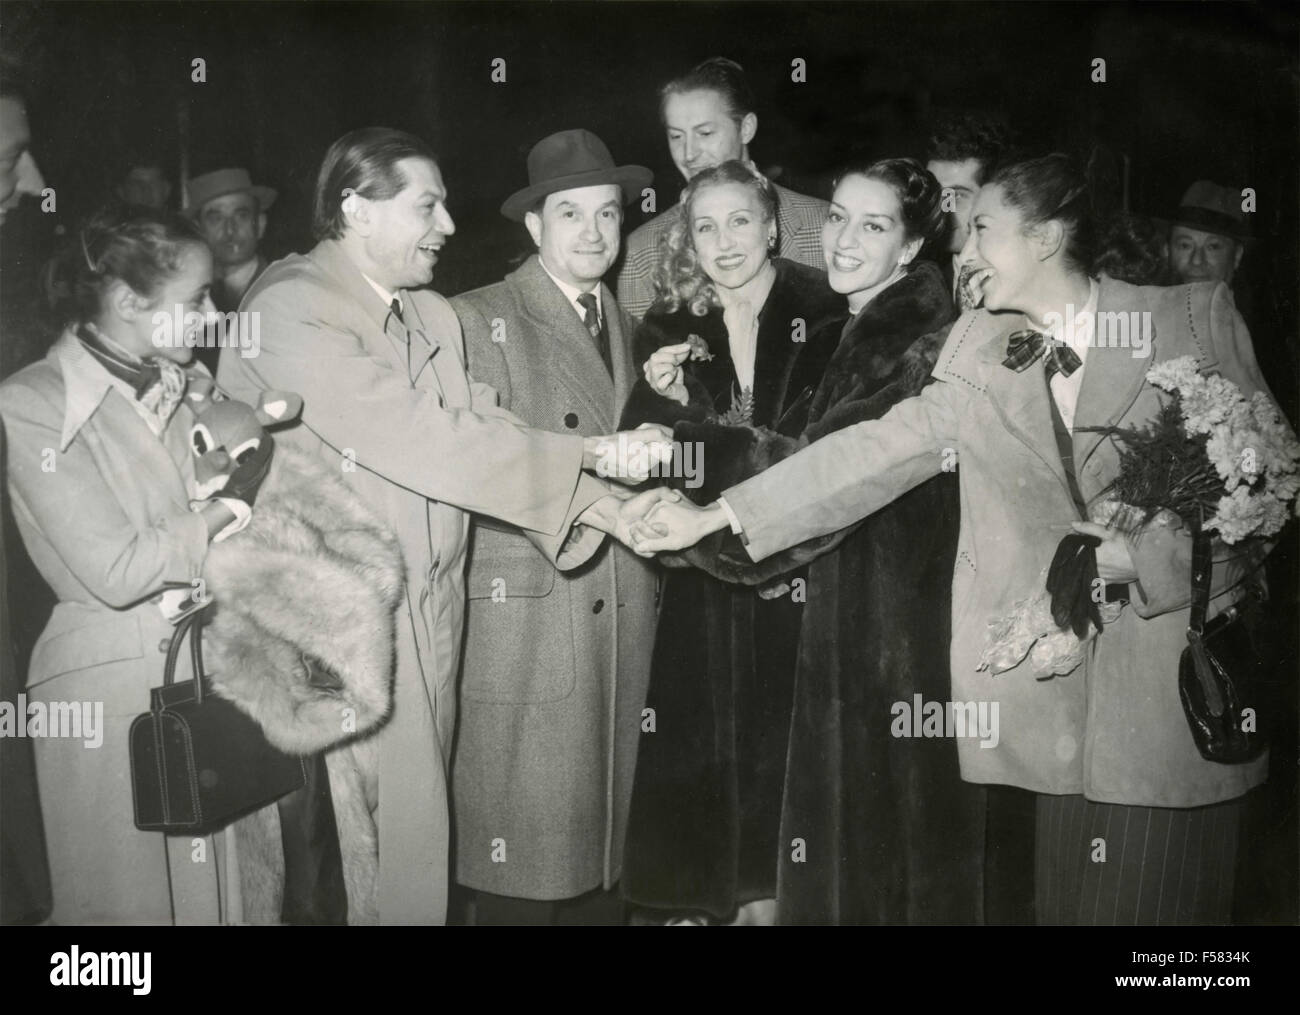 Daydé, Serge Lifar, Georges Hirsch, Darsonval Bardin and the Corps de Ballet of the Opera, Paris, France - Stock Image